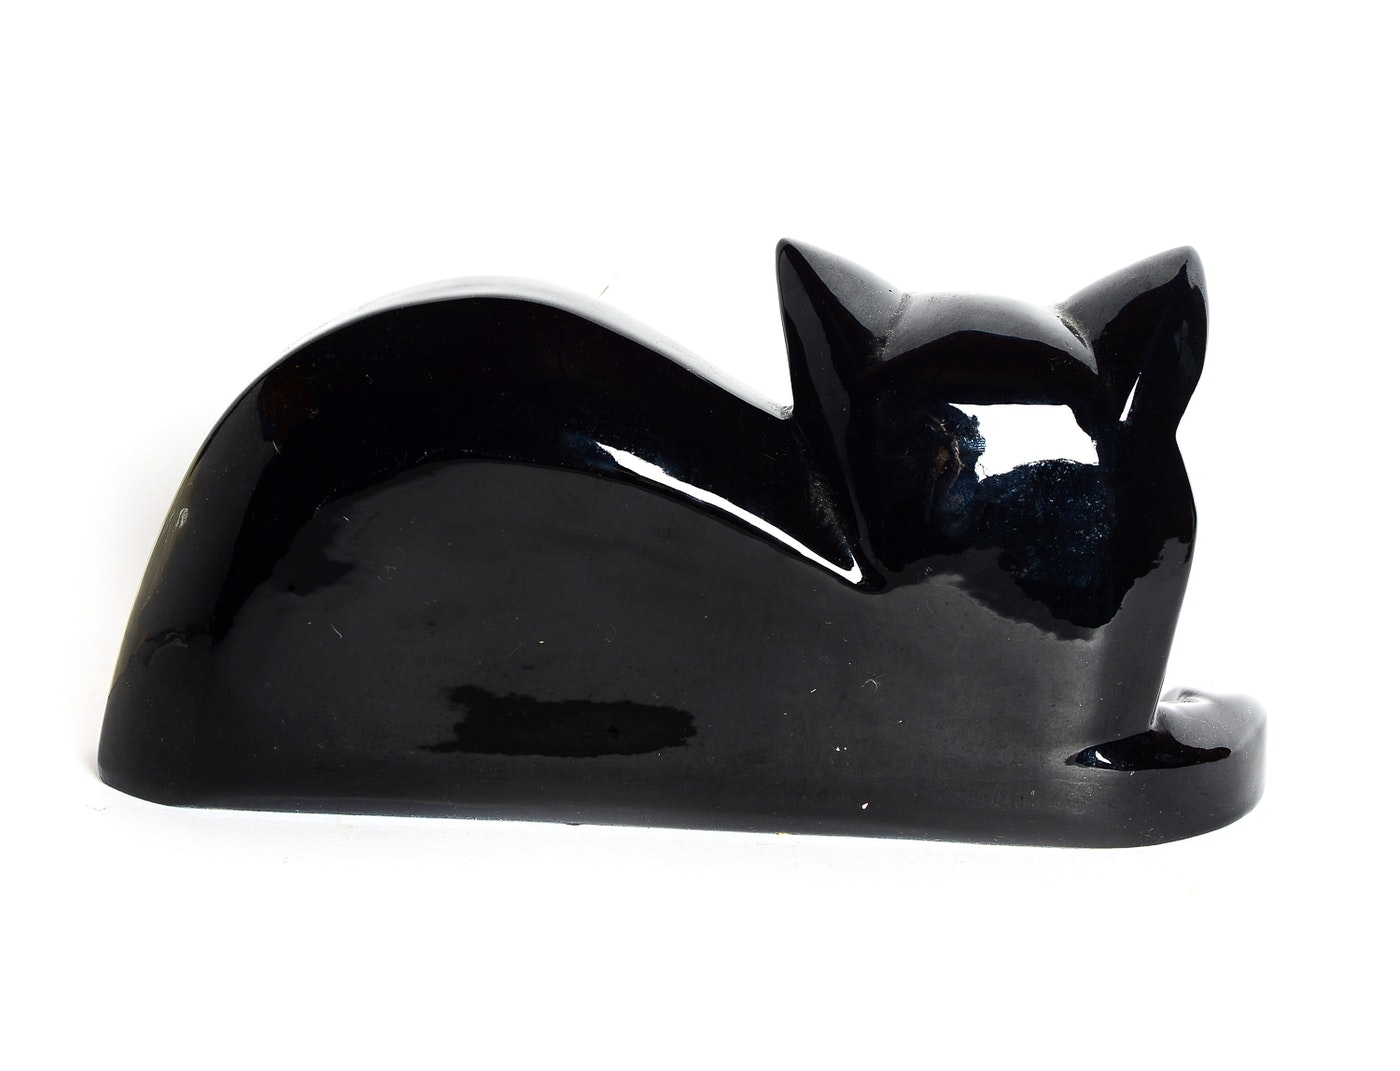 Black And White Pottery Cat Mid Century